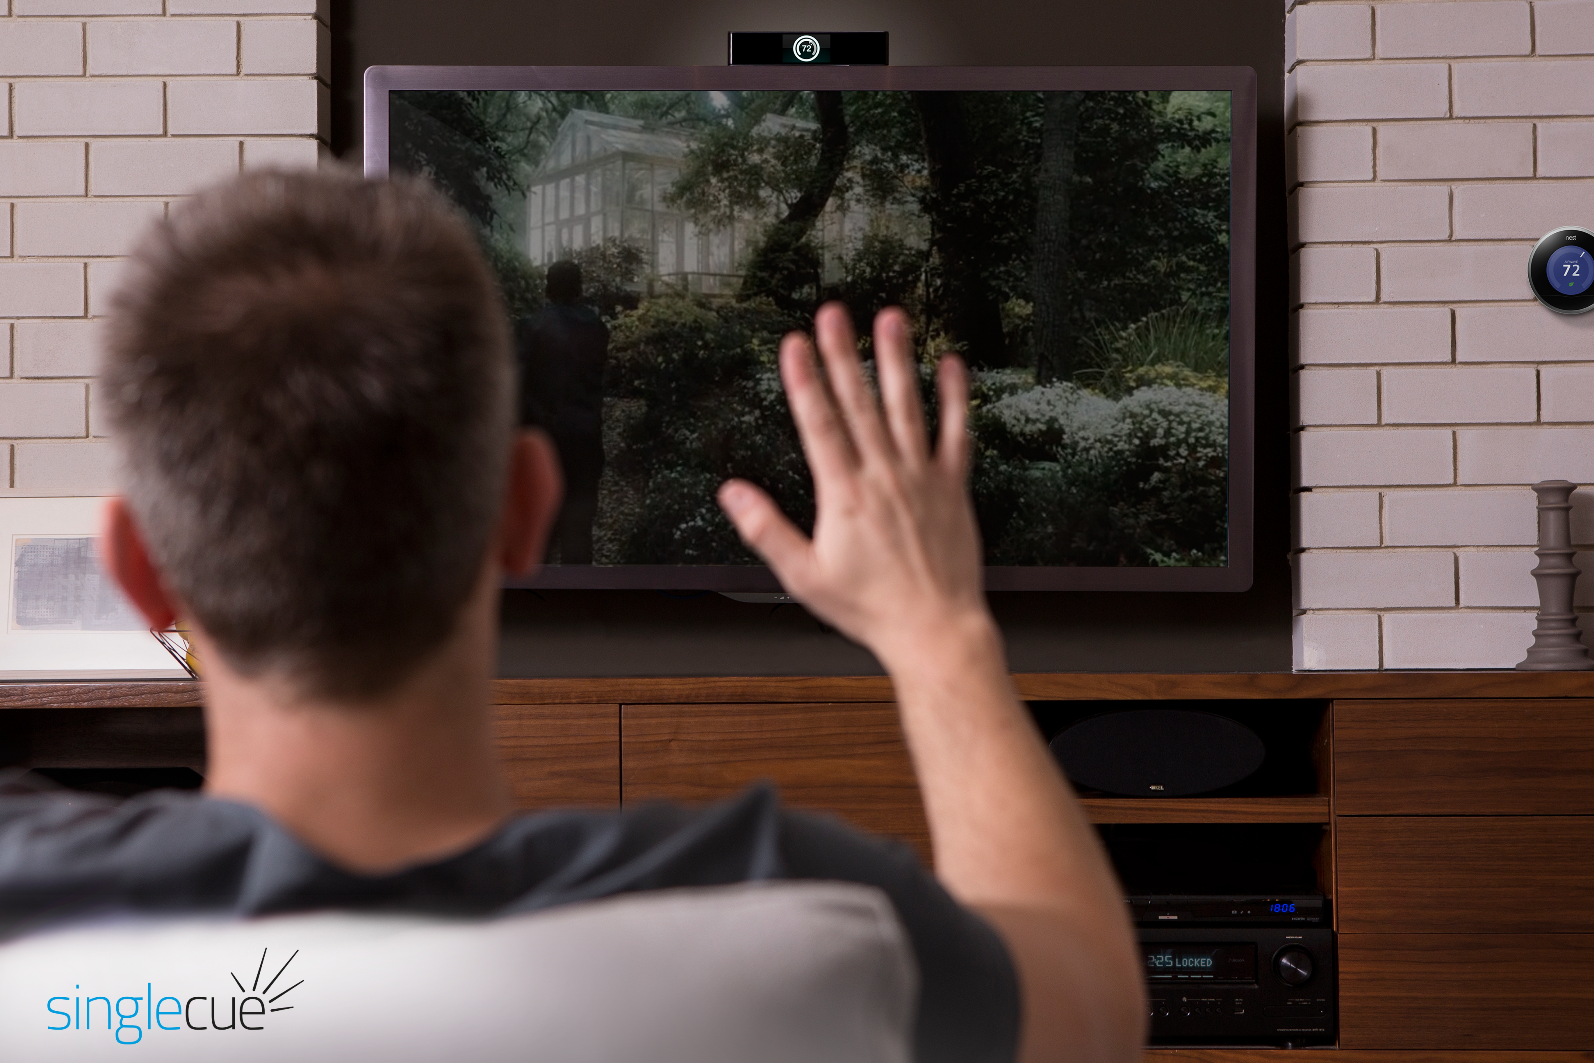 Singlecue recognizes hand motions for remote control. Photo: courtesy